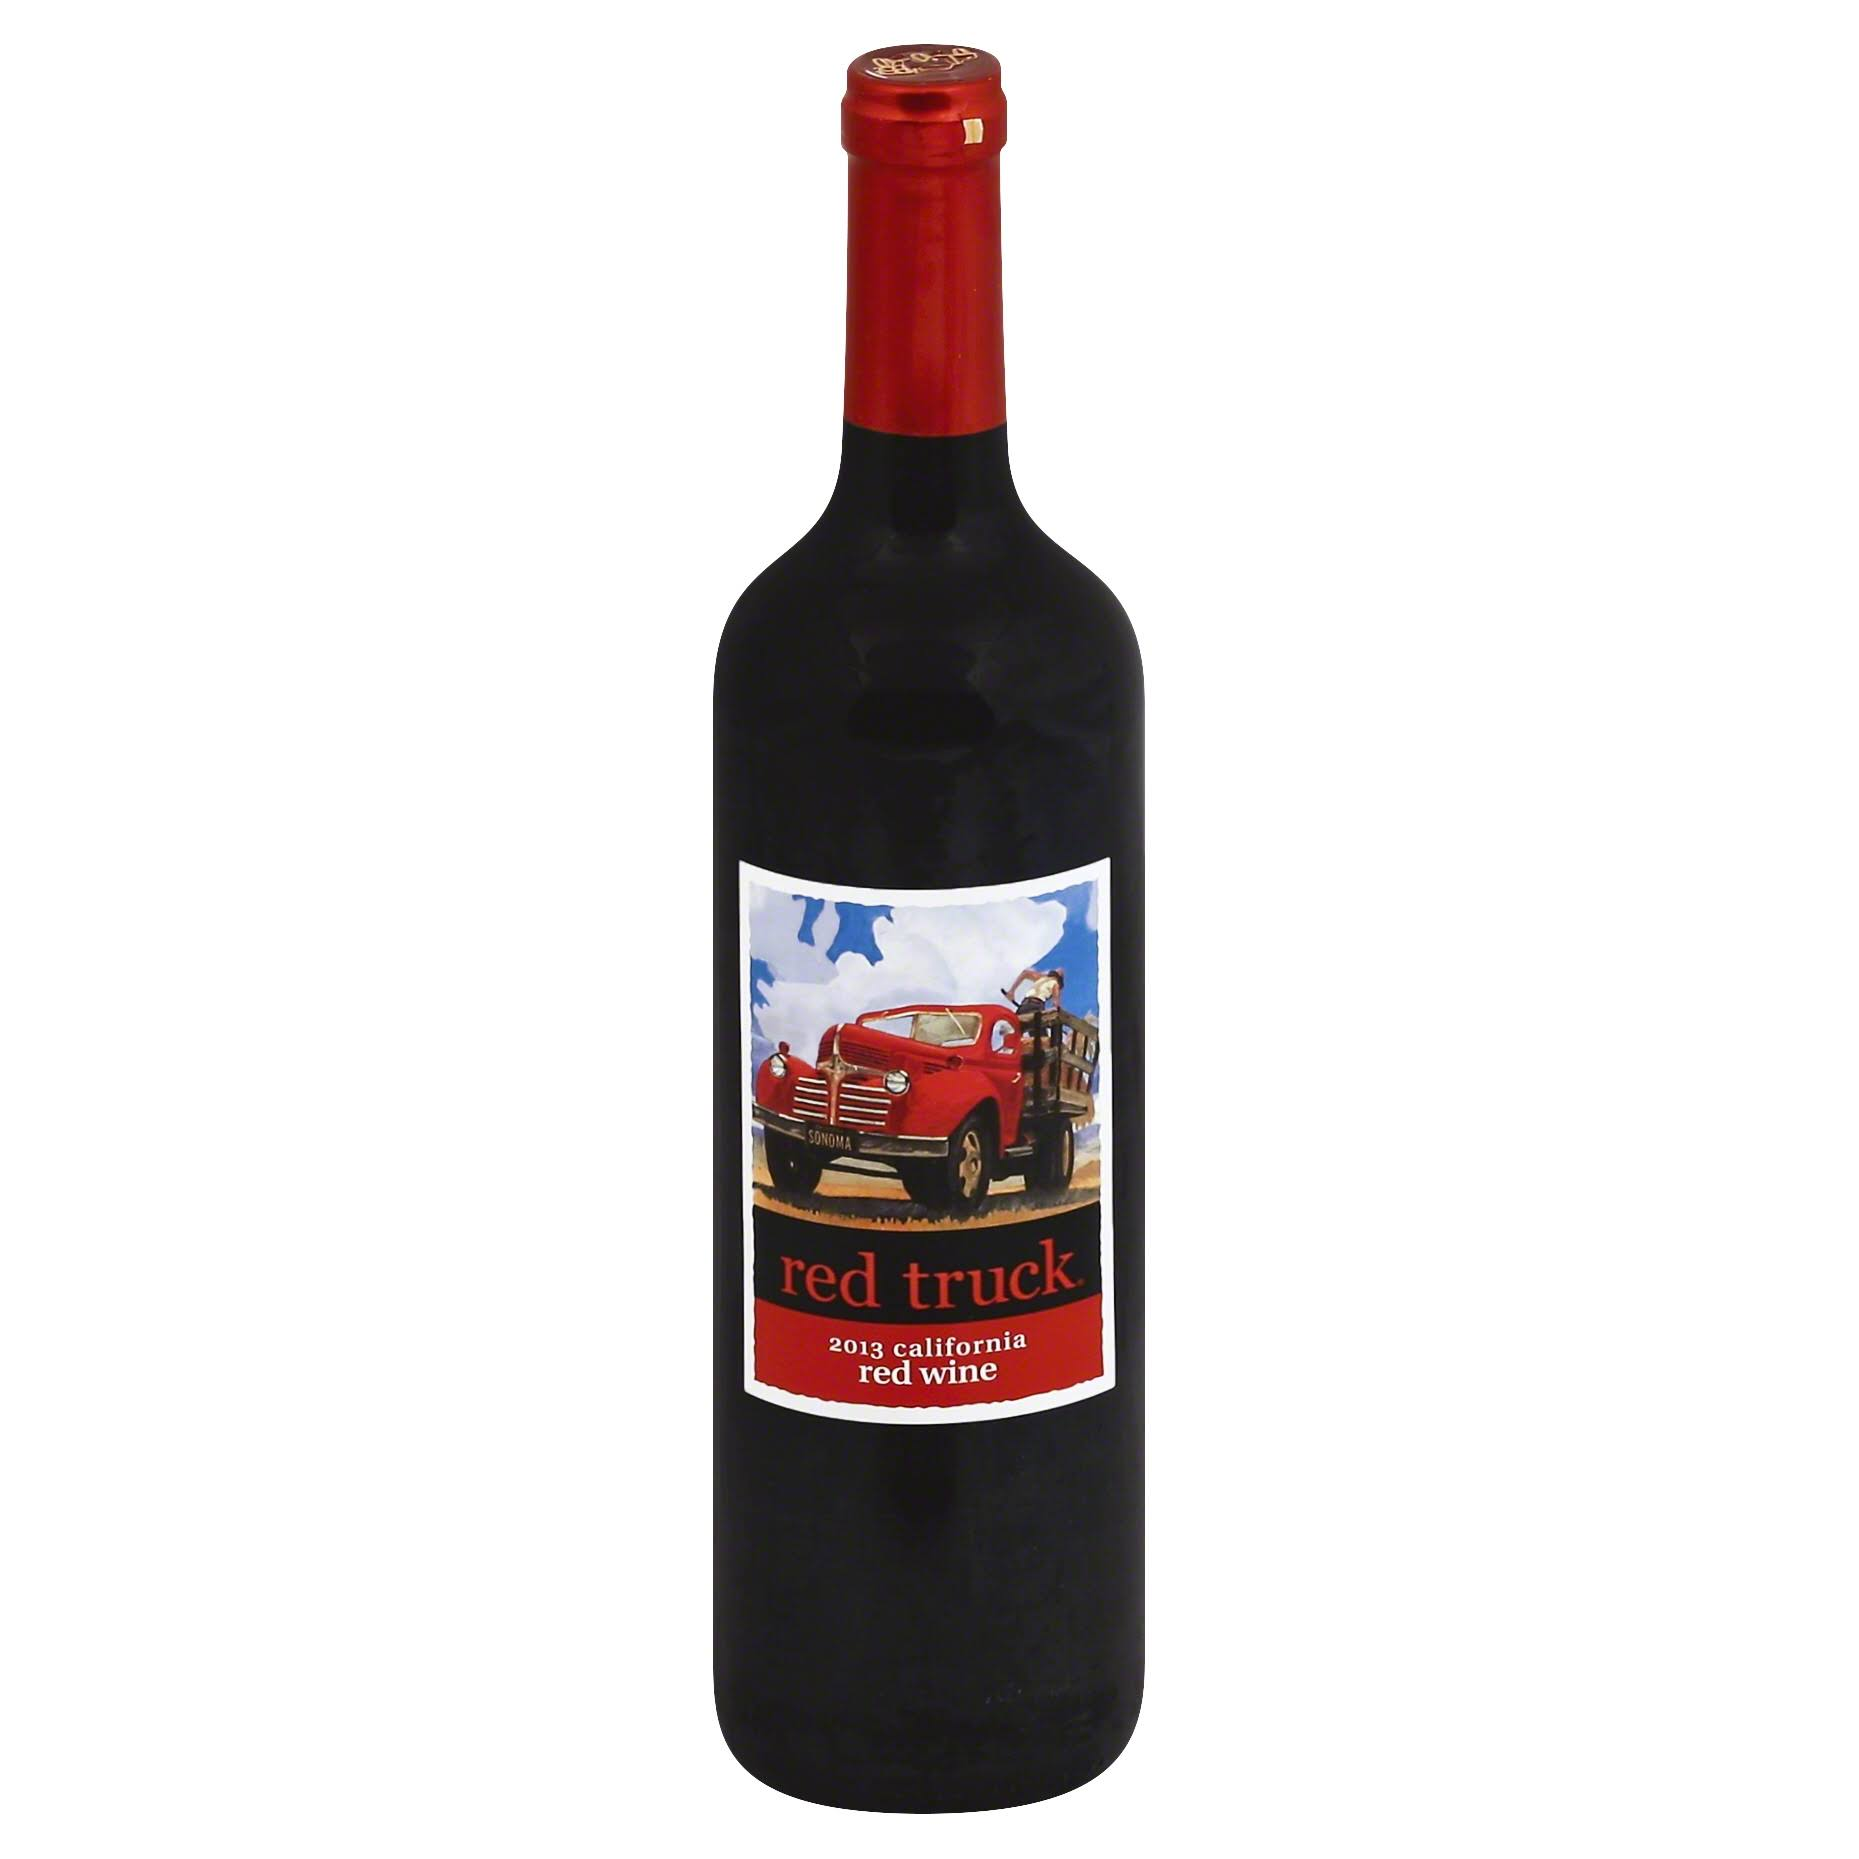 Red Truck Red Wine, California, 2013 - 750 ml